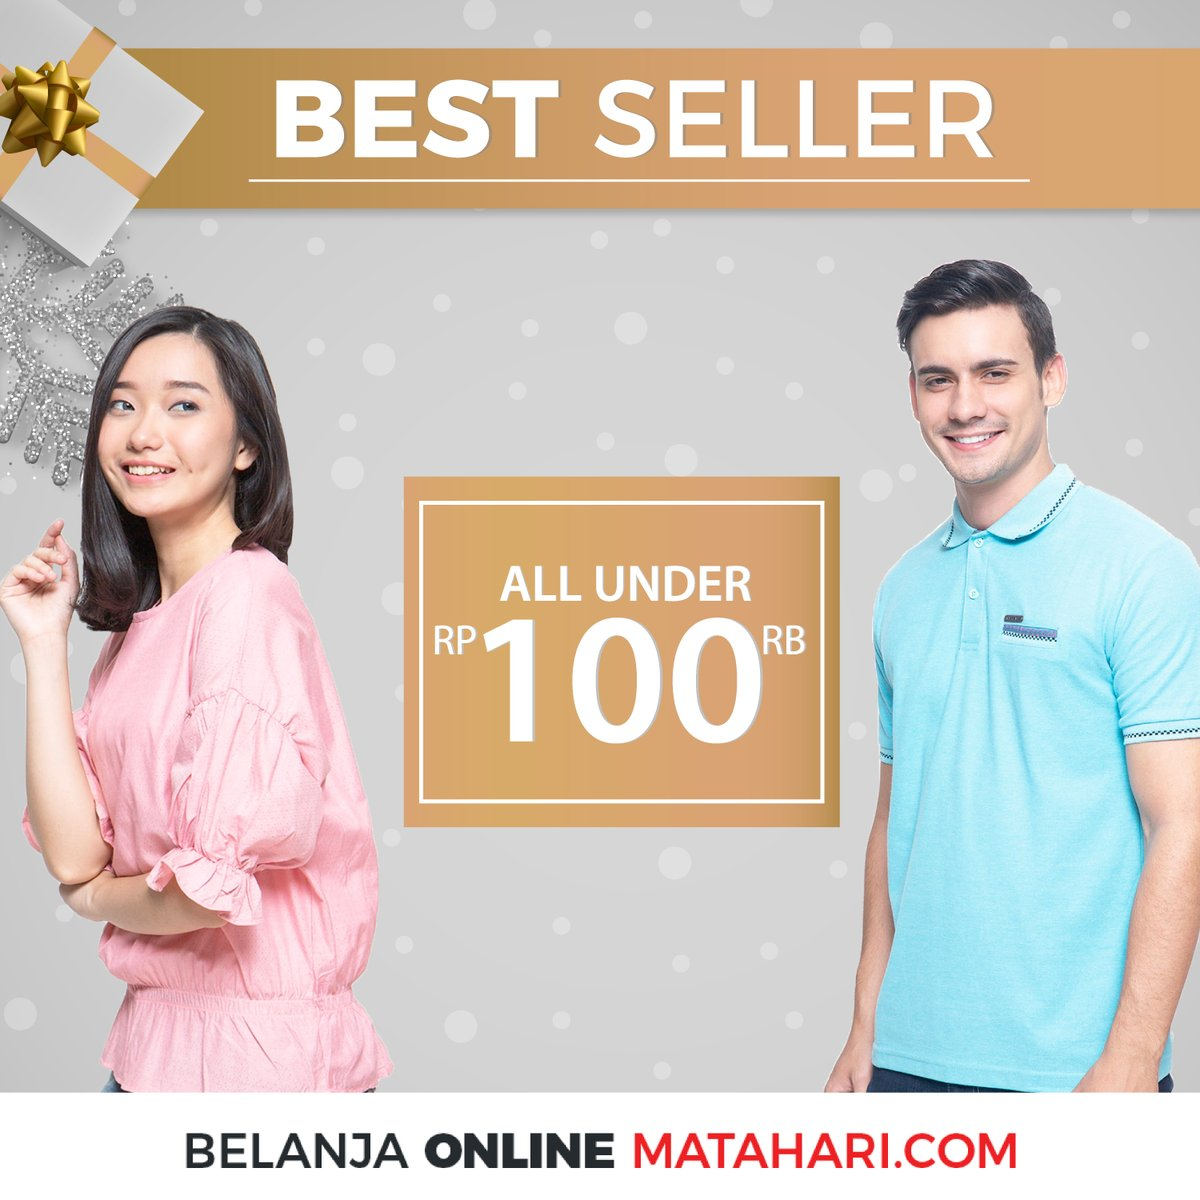 #Matahari - Promo All Under 100K & Voucher Diskon 10% Min Beli 100K